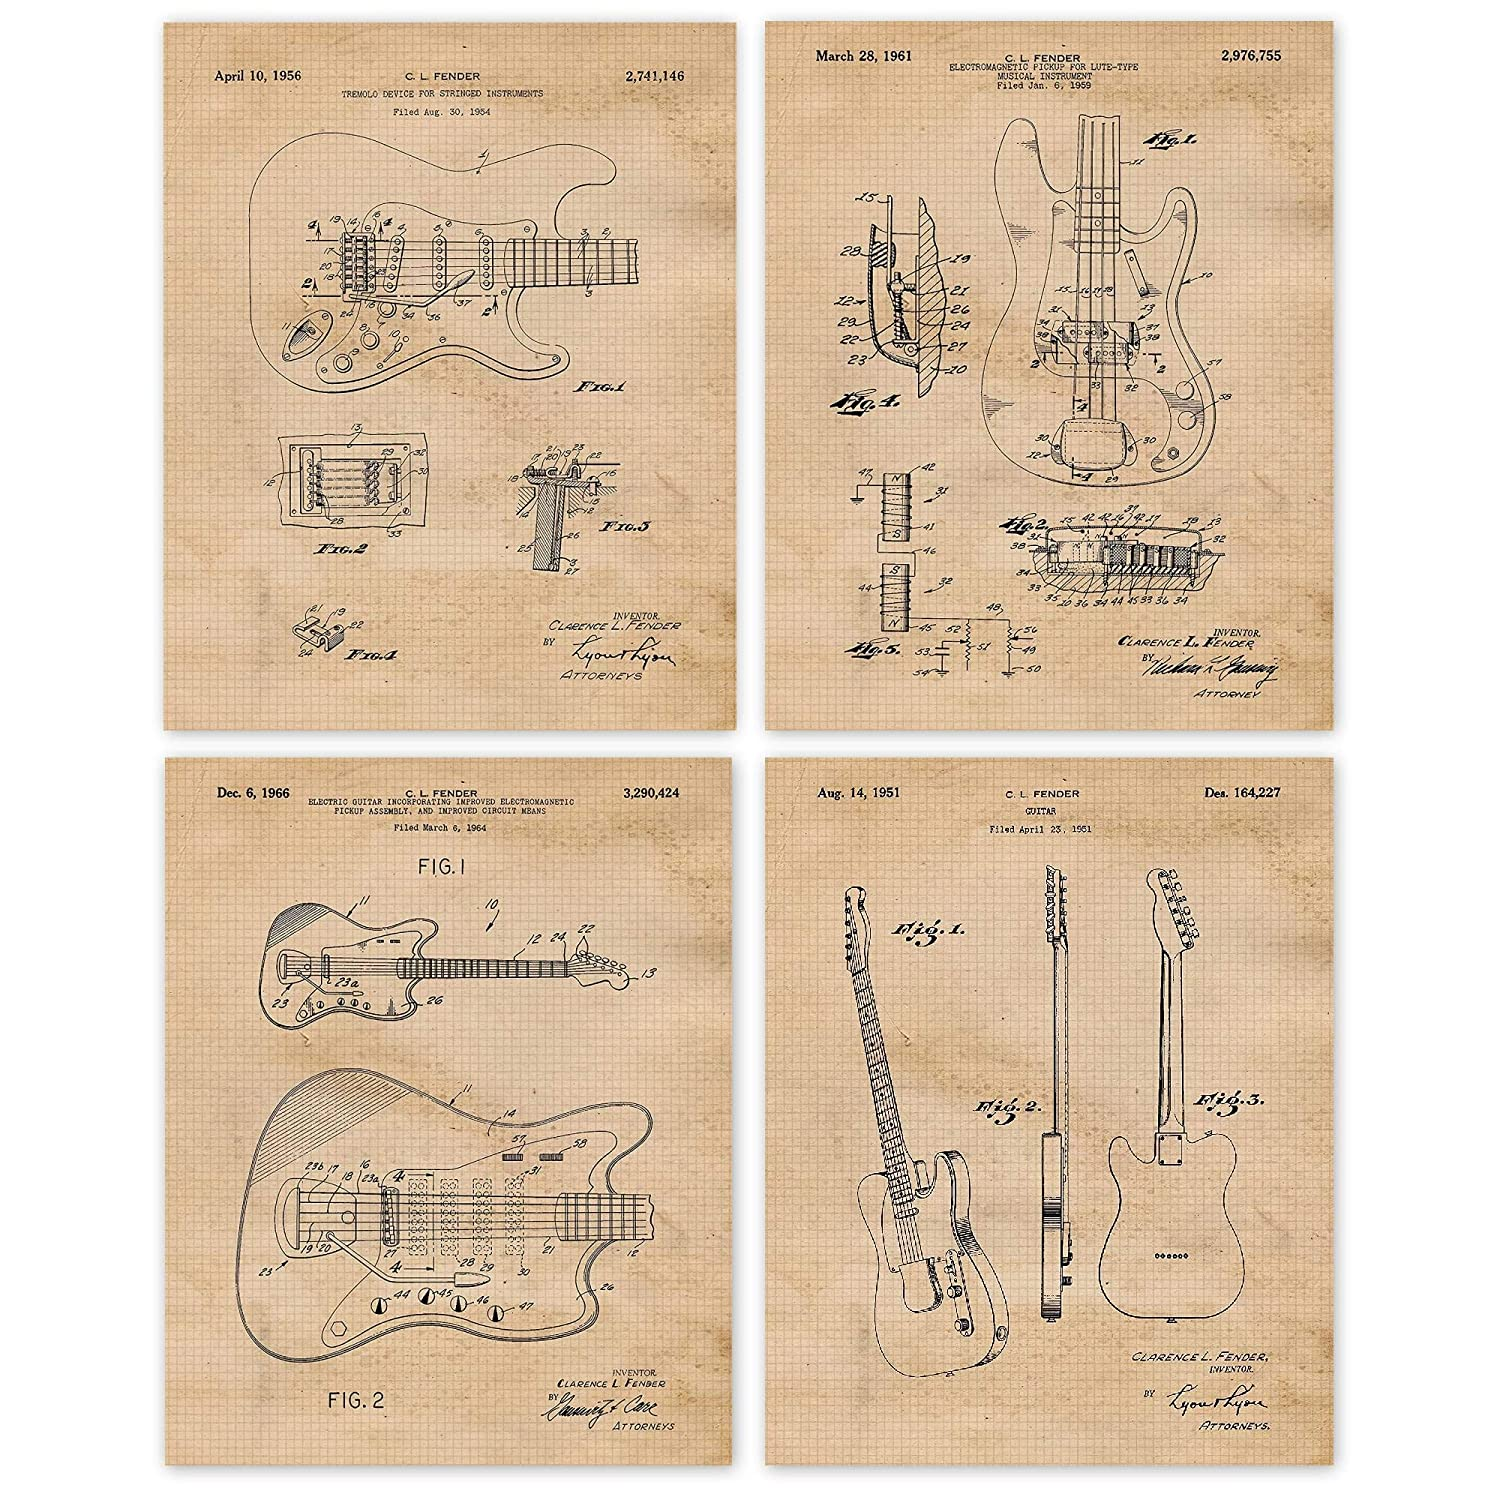 Vintage Fender Guitar Patent Poster Prints, Set of 4 (8x10) Unframed Photos, Wall Art Decor Gifts Under 20 for Home, Office, Man Cave, College Student, Teacher, Musician, Band, Rock & Roll Fan